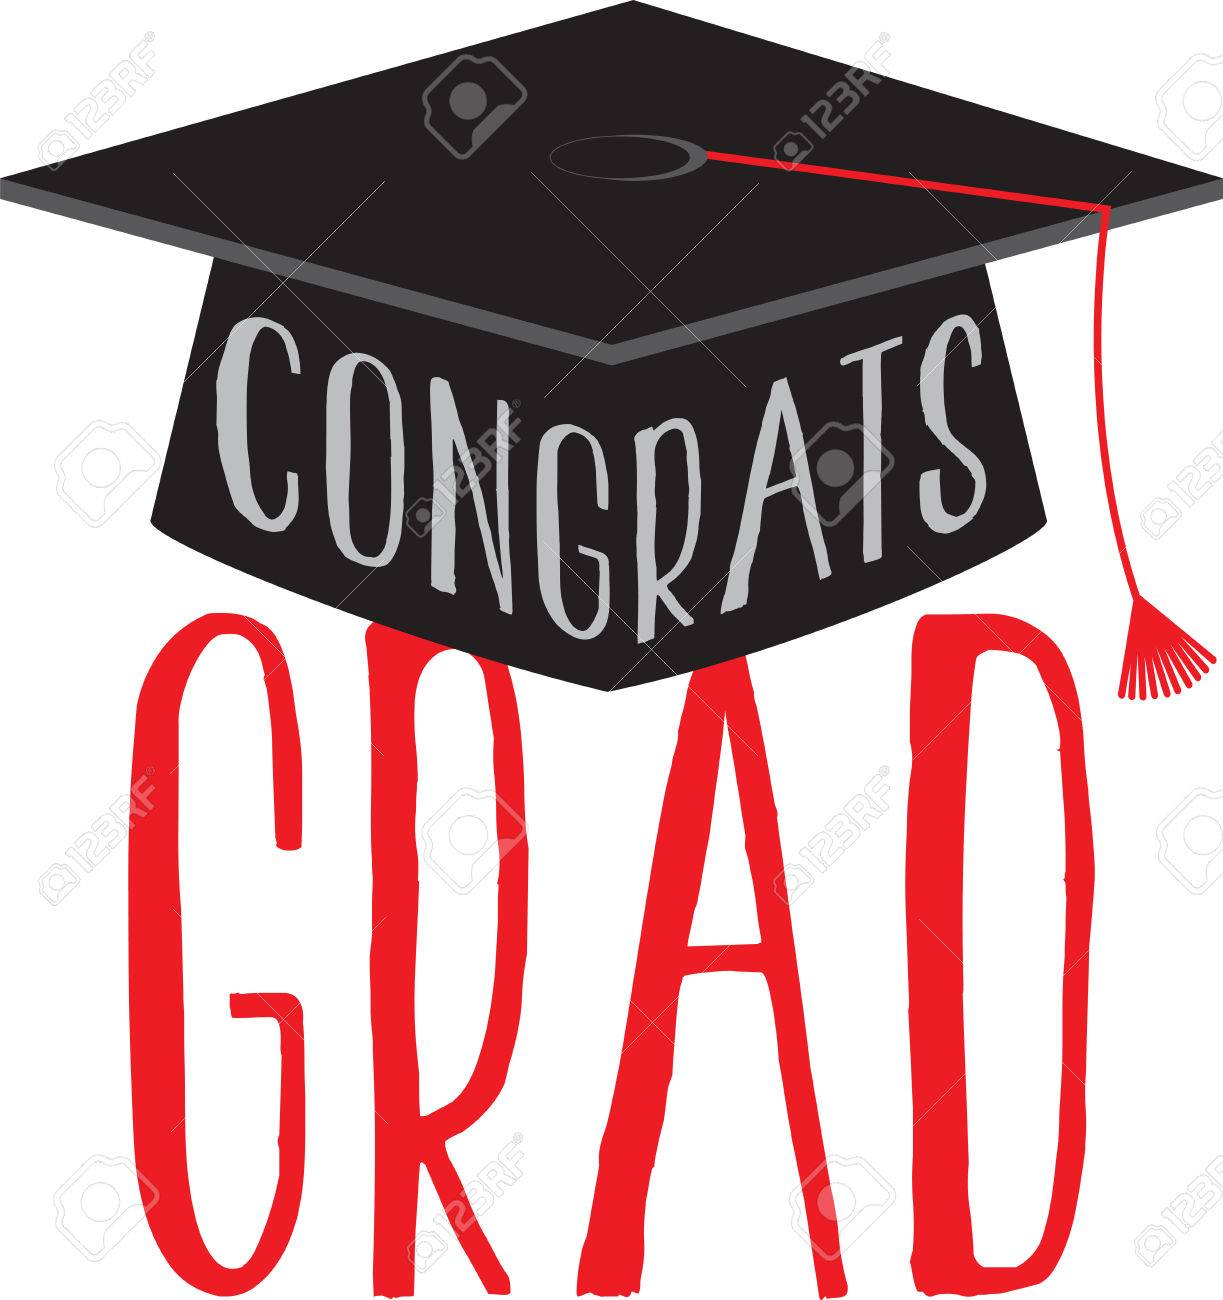 congratulate your dear one with this design embellished on their rh 123rf com free graduation cap and gown clipart